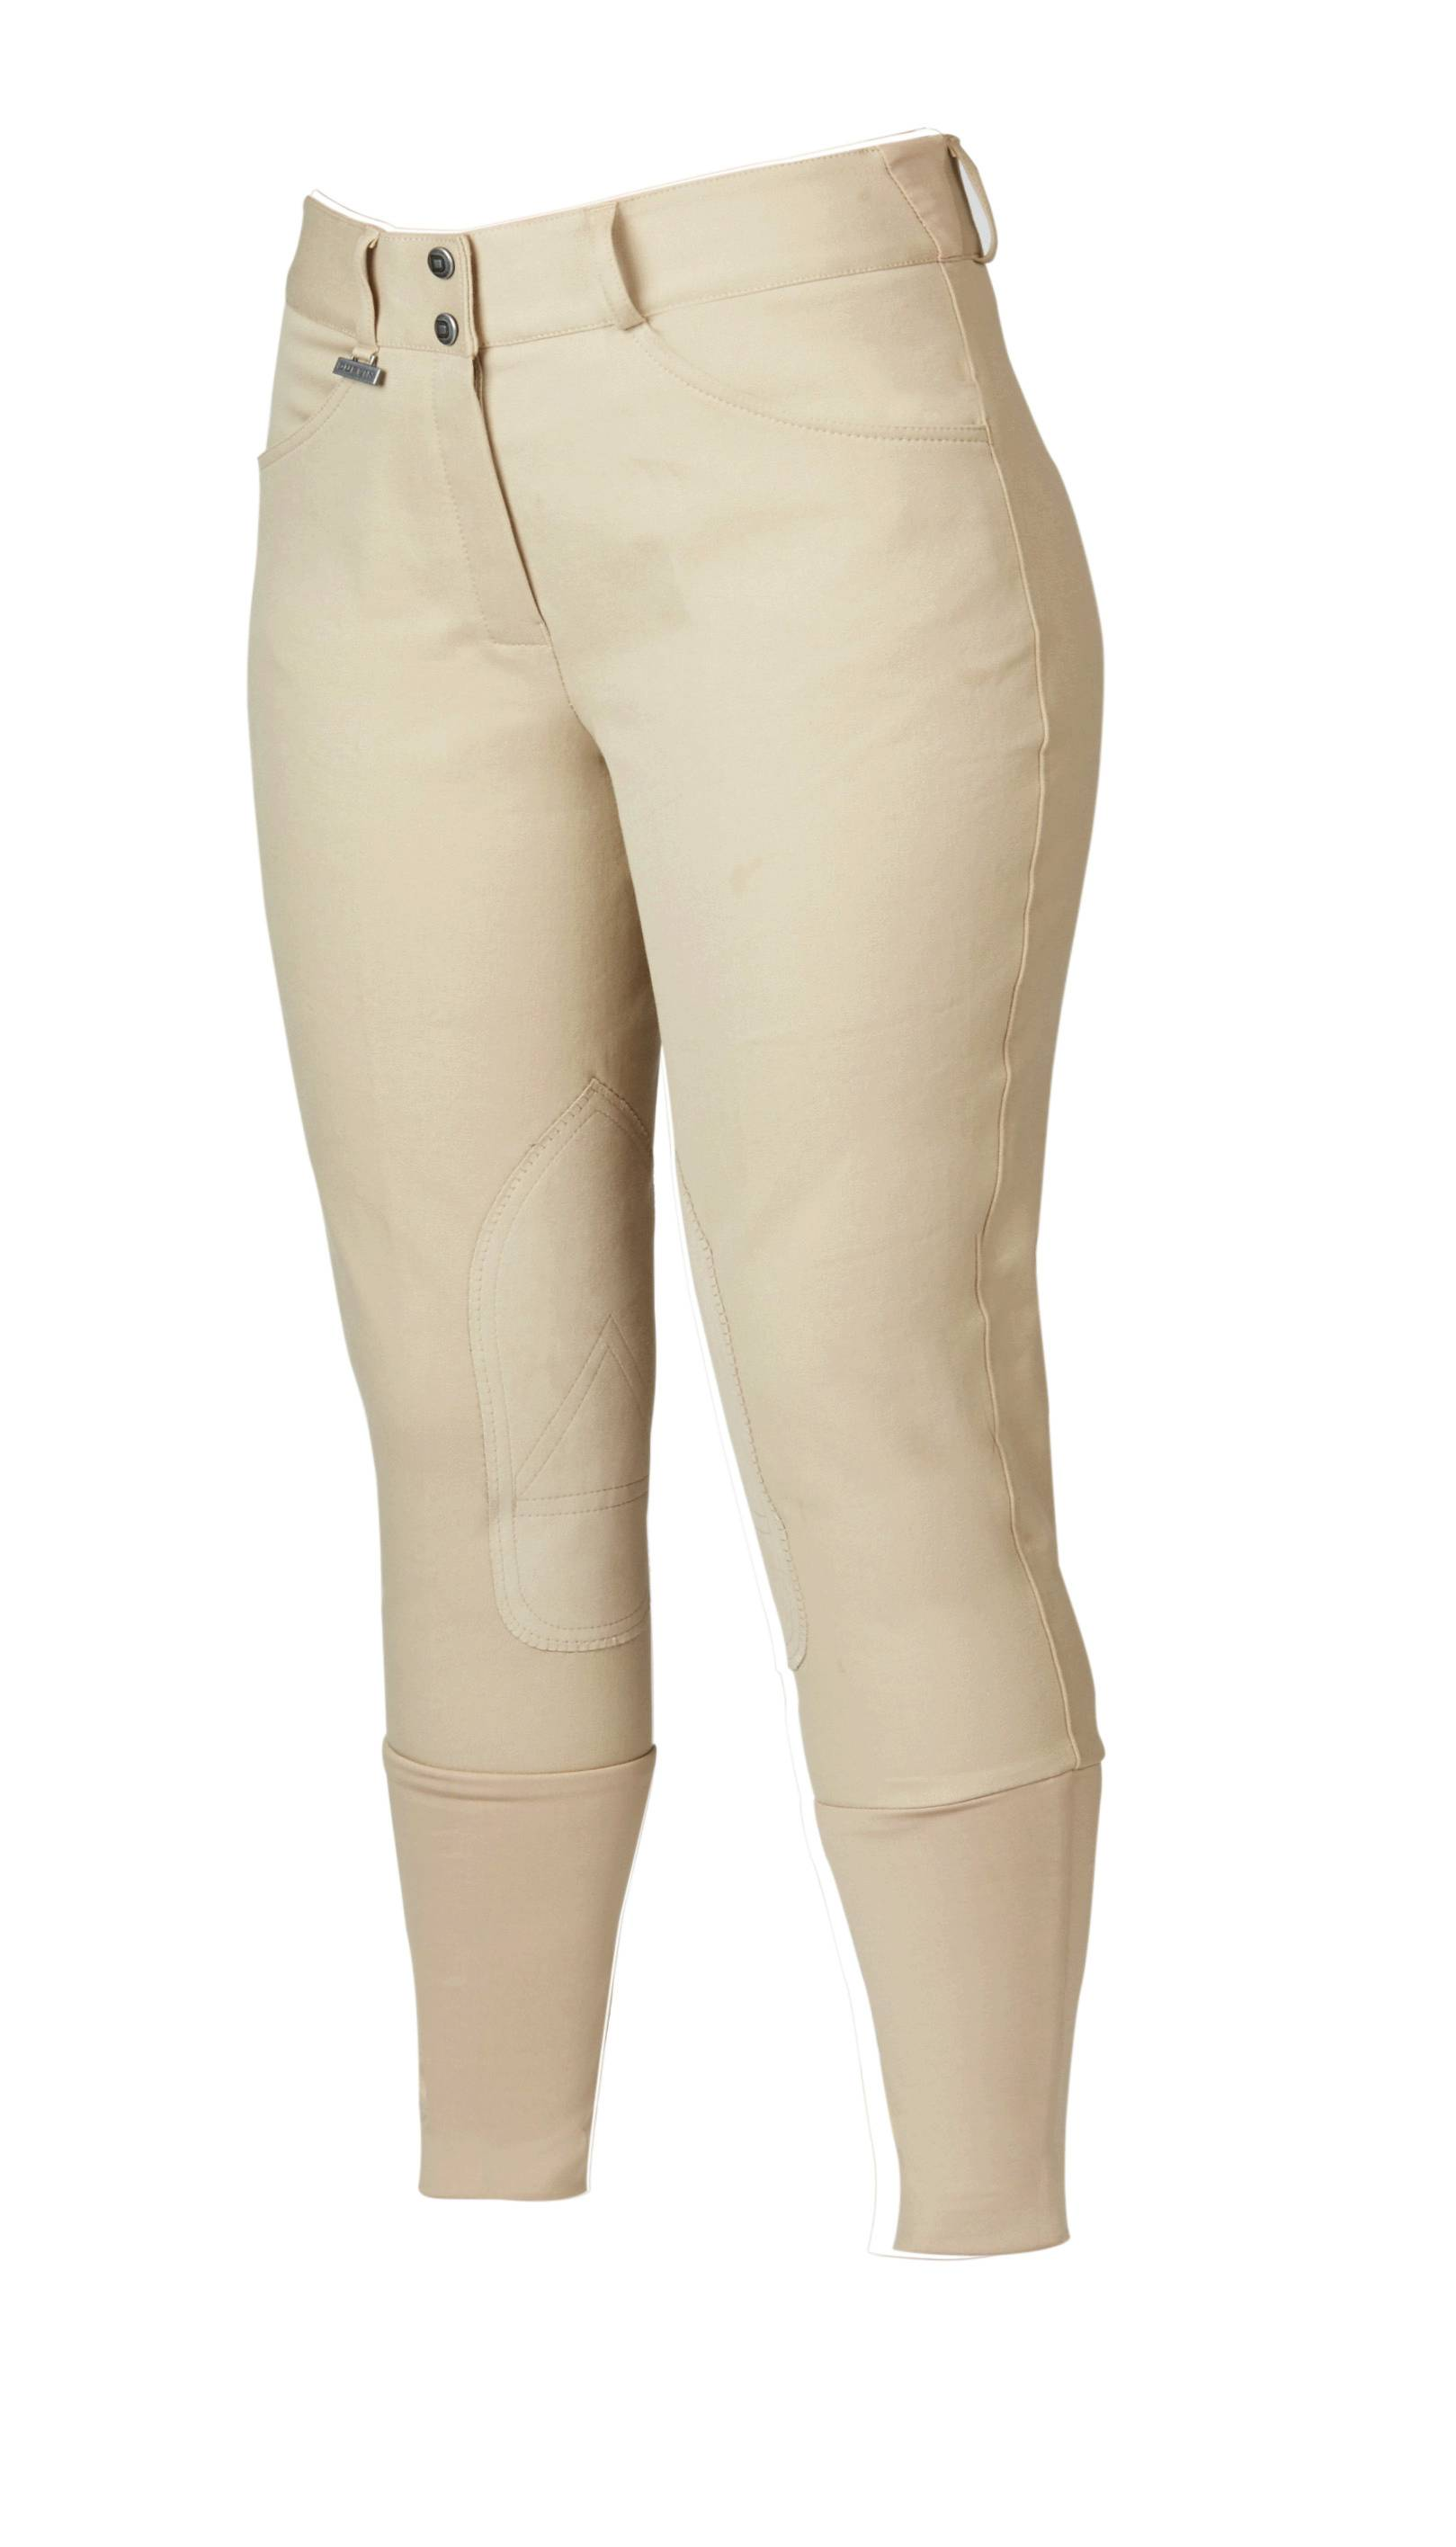 Dublin Active Shapely Breeches - Ladies, EuroSeat